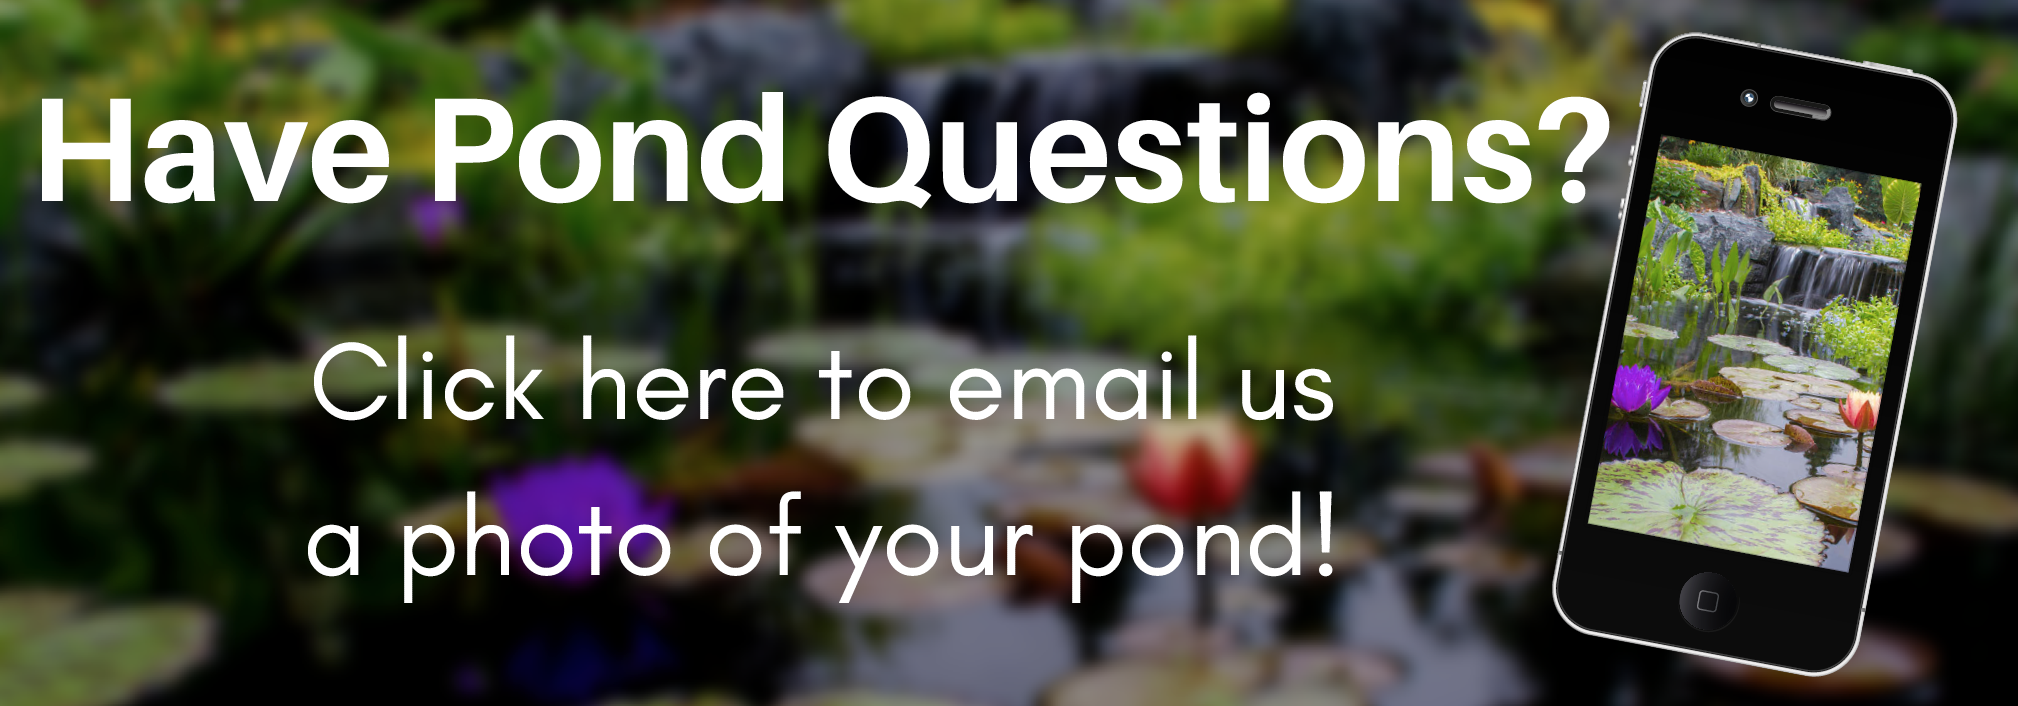 pond questions email